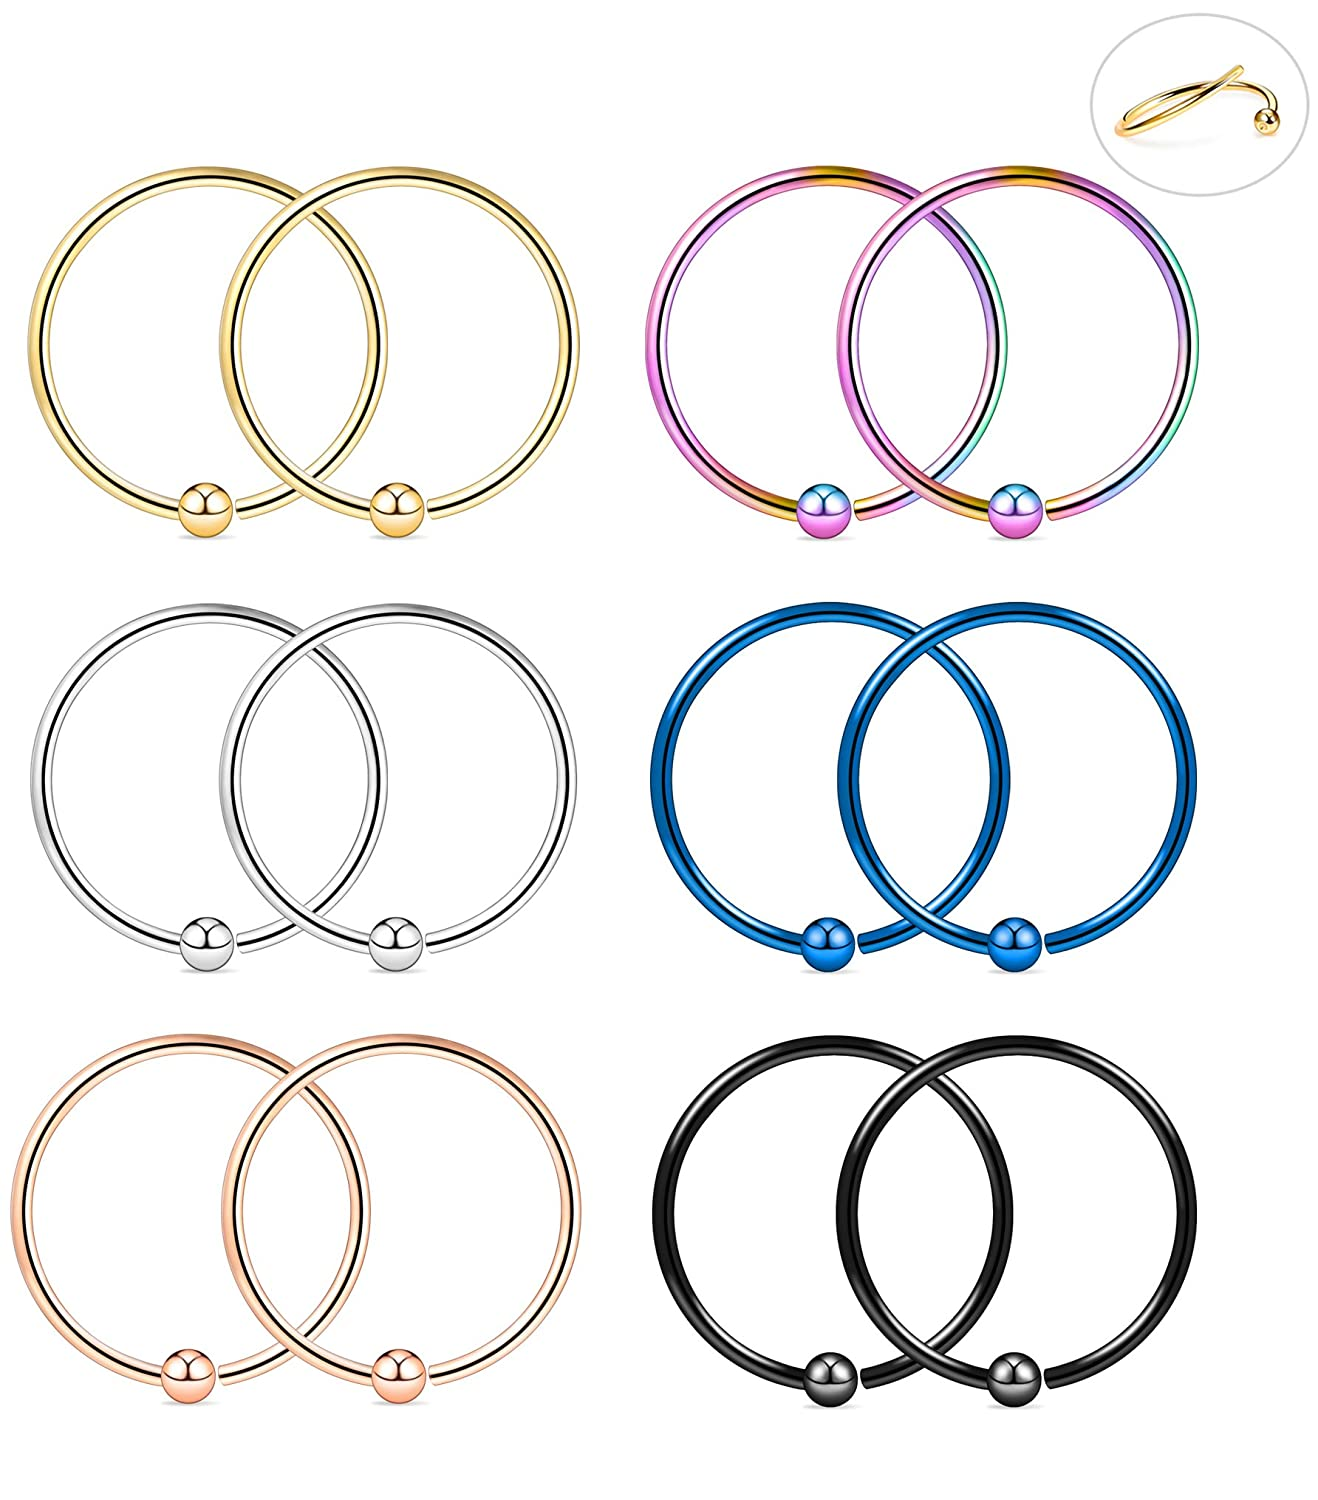 Tornito 6 Pairs 18G-16G 316L Stainless Steel Nose Ring Hoop Septum Lip Daith Cartilage Helix Tragus Piercing Ring 8MM NP10M-18G